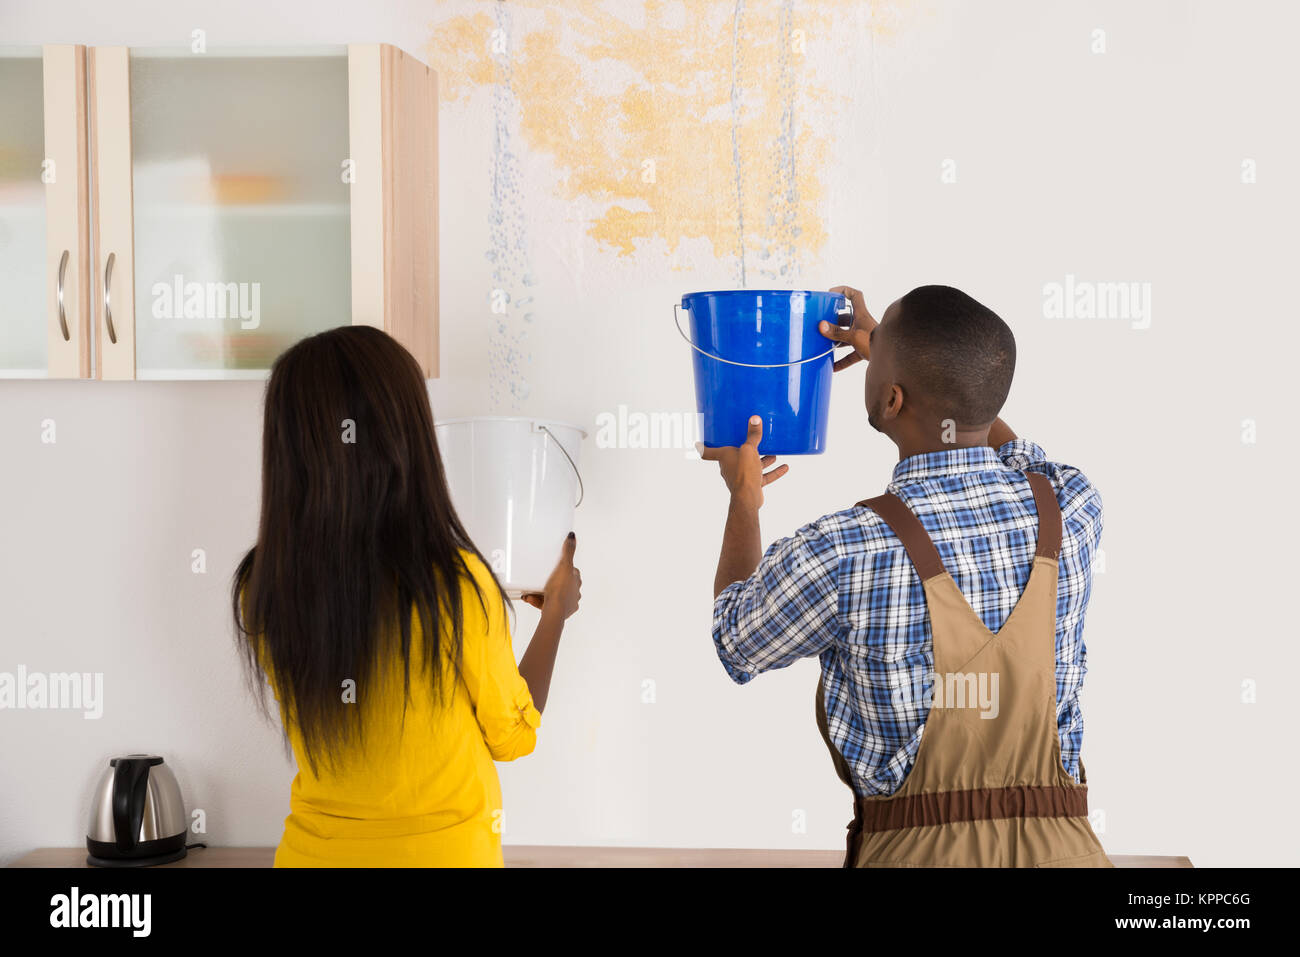 Young Woman And Worker Collecting Water In Bucket From Ceiling - Stock Image